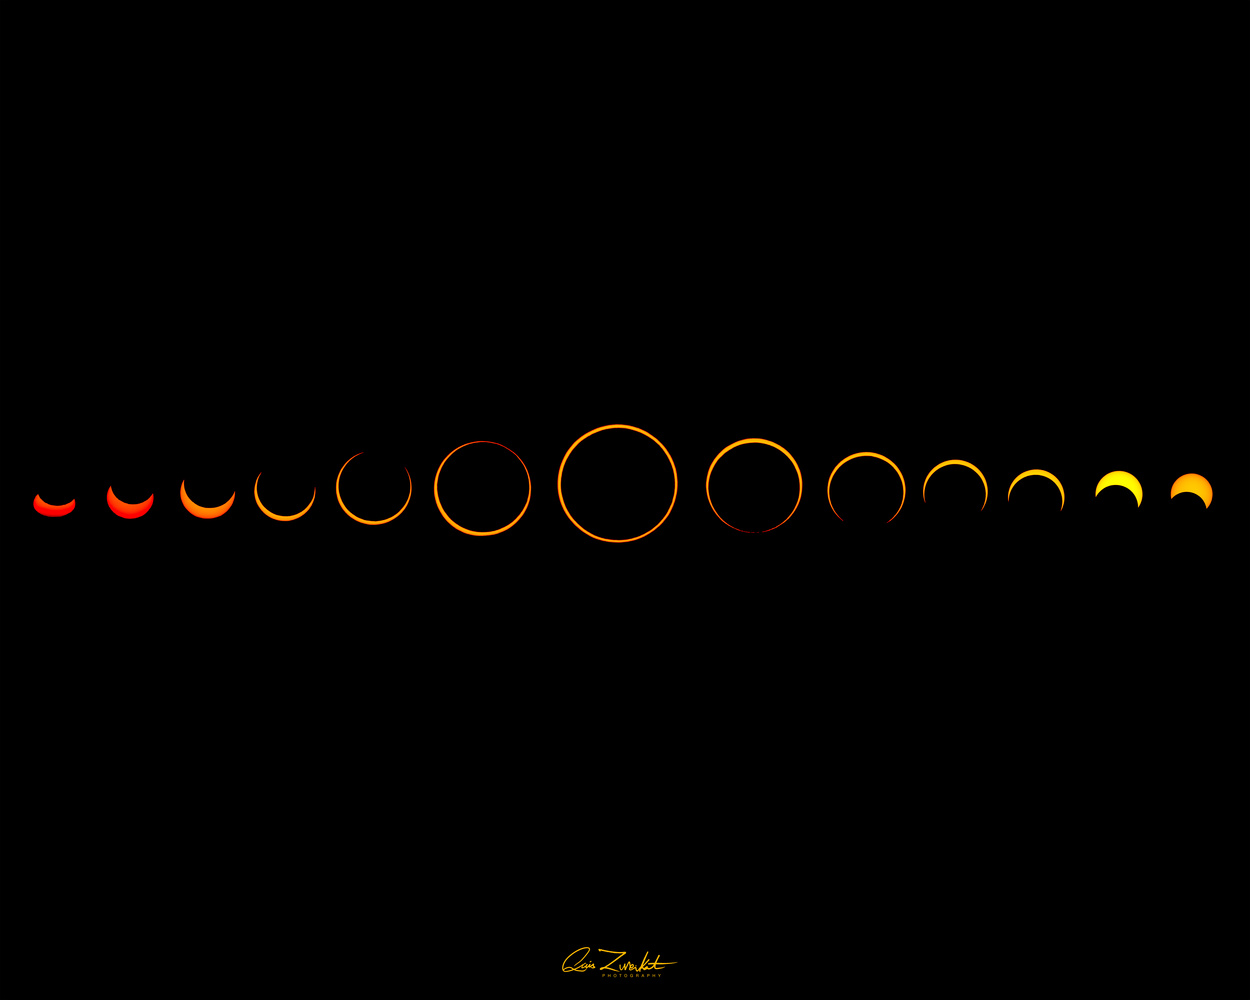 Solar Eclipse by Qais Zureikat